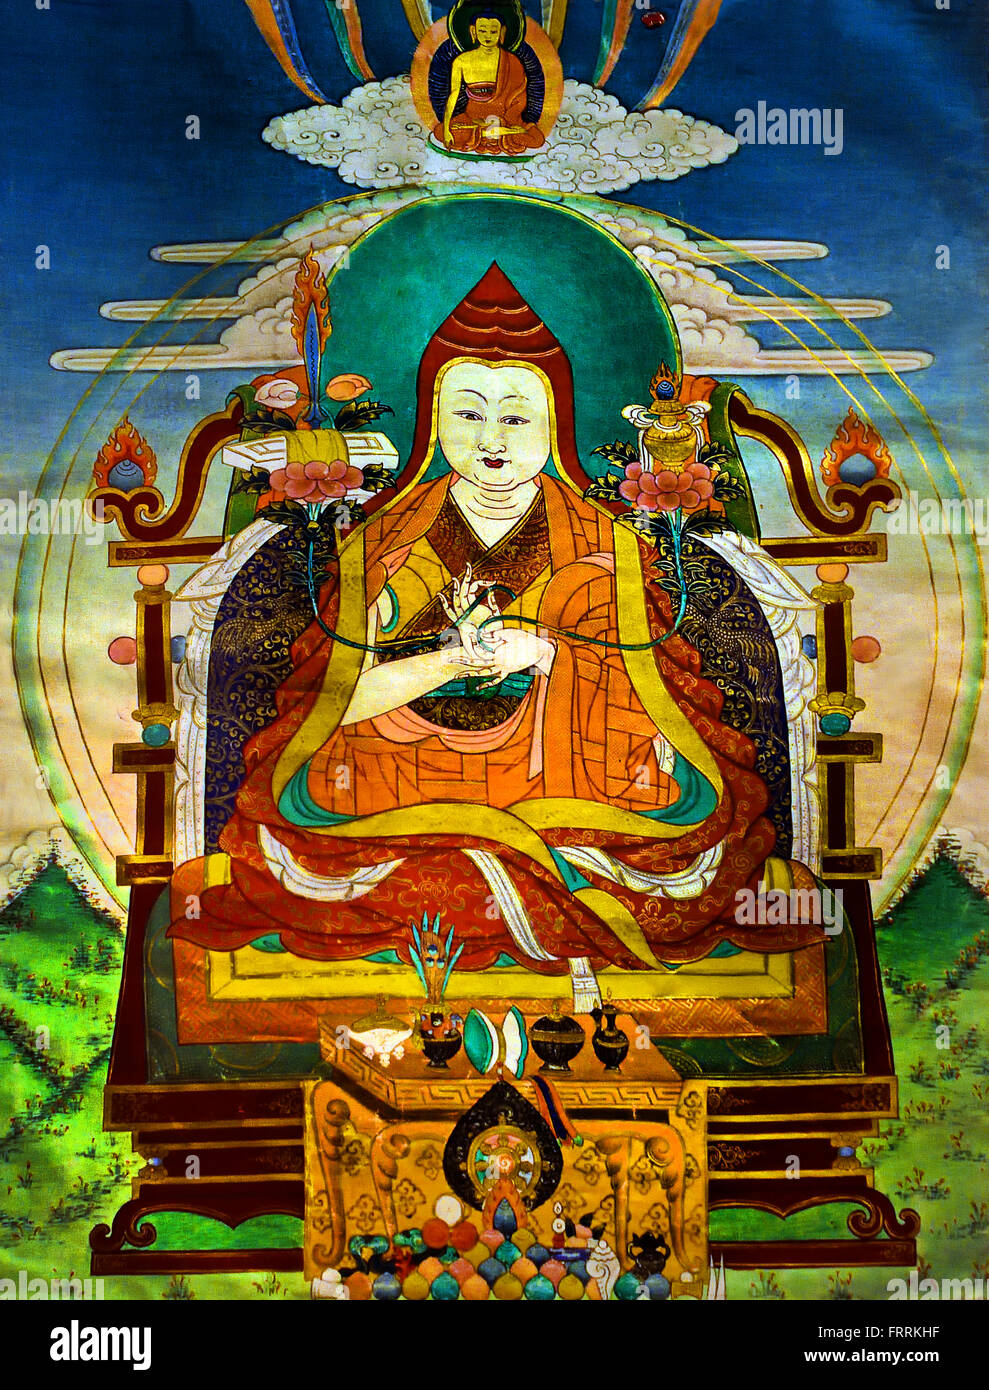 This scroll painting, thangka, shows a teacher, Lama, on a throne with his hands in dharmacakramudra. In each of - Stock Image